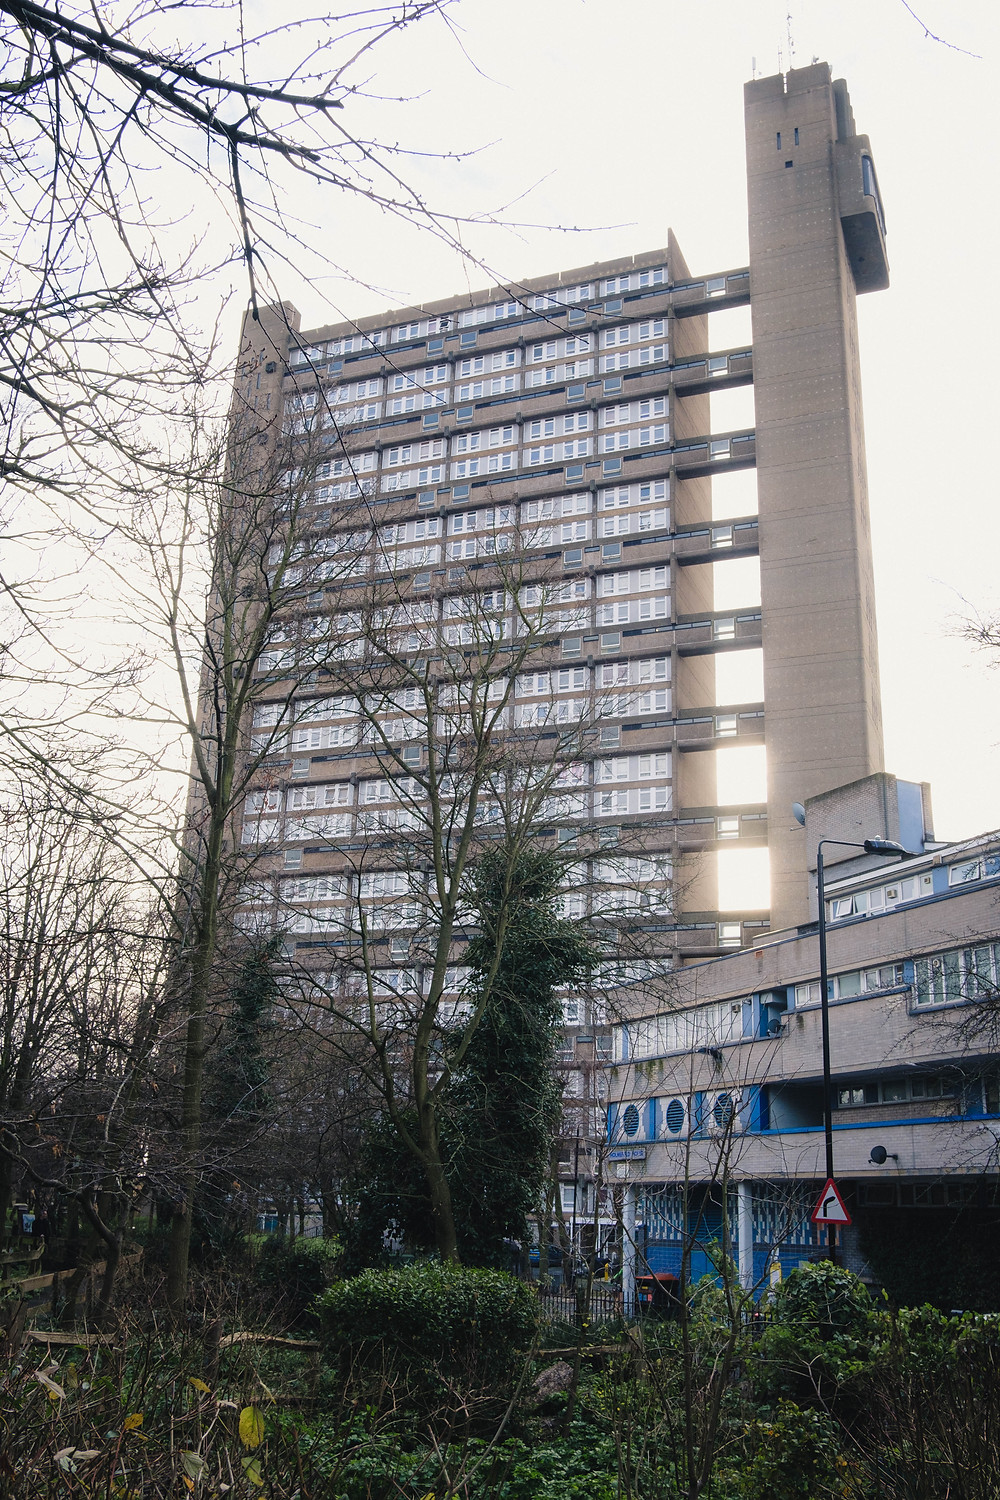 Photograph of the Meanwhile Garden West London and Trellick Tower